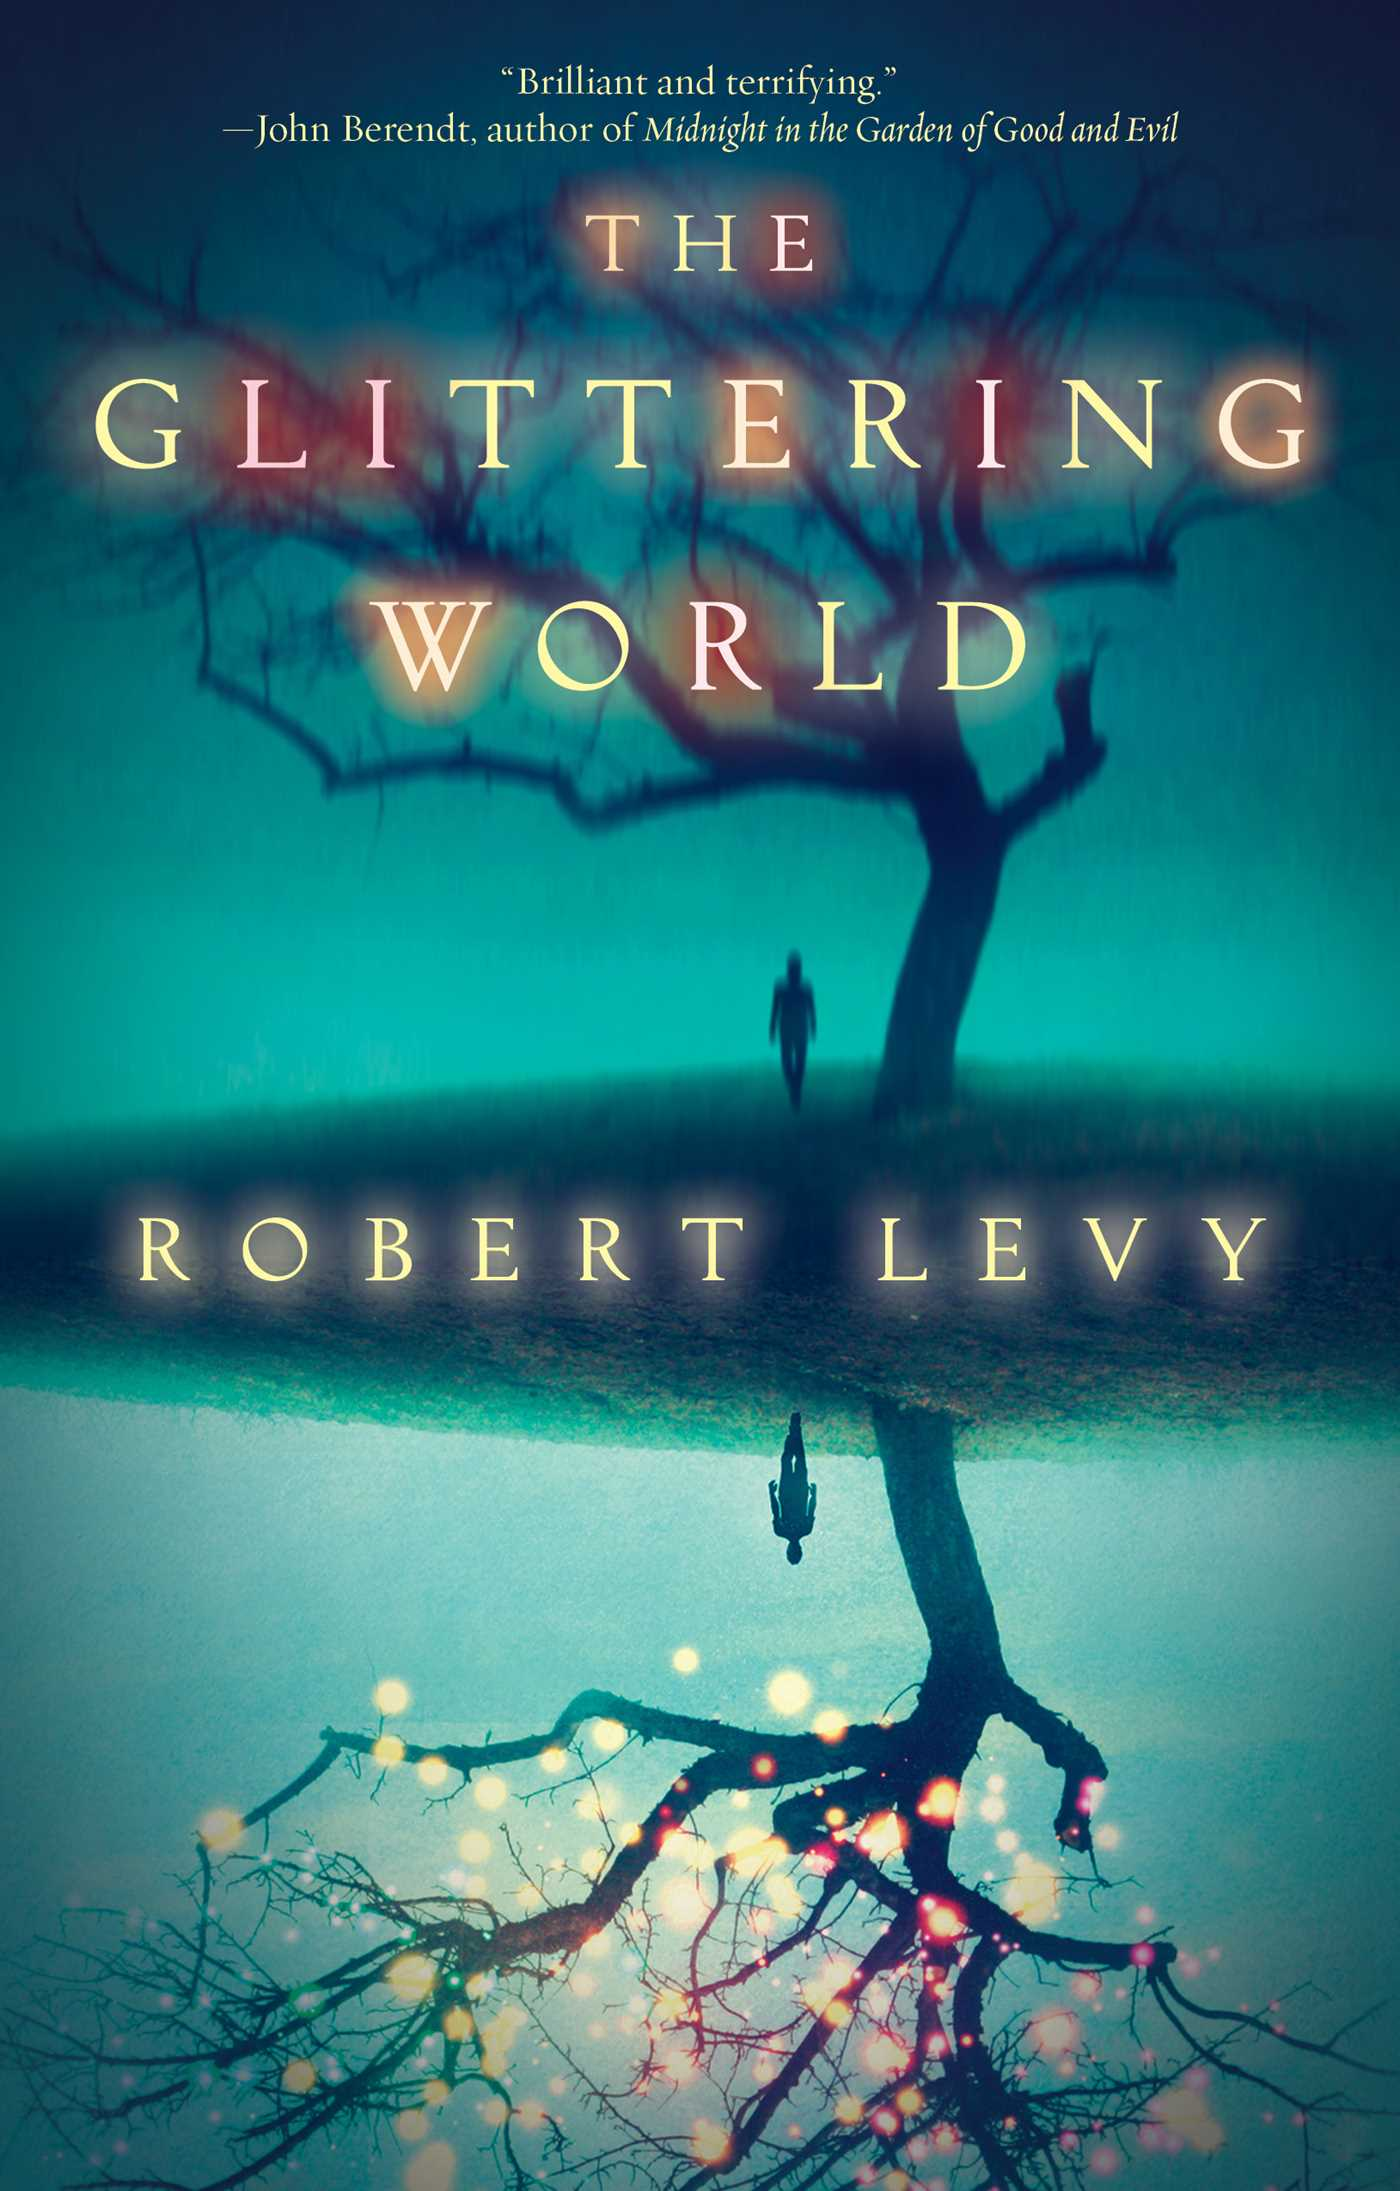 The glittering world 9781476774527 hr